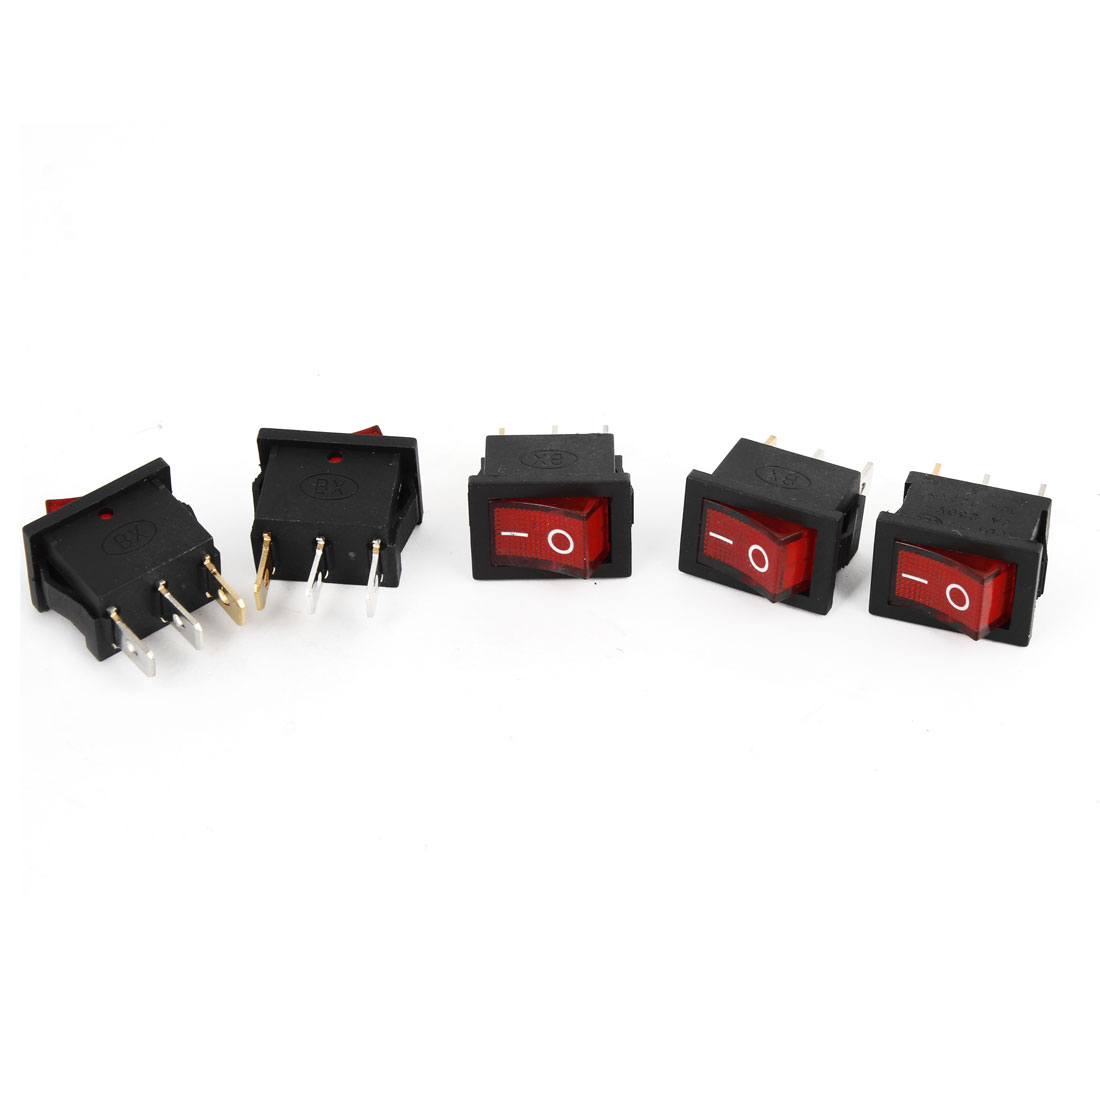 5PCS 2Positions SPST Panel Mount Red Lamp Snap In Boat Rocker Switch AC 250V/6A 125V/10A